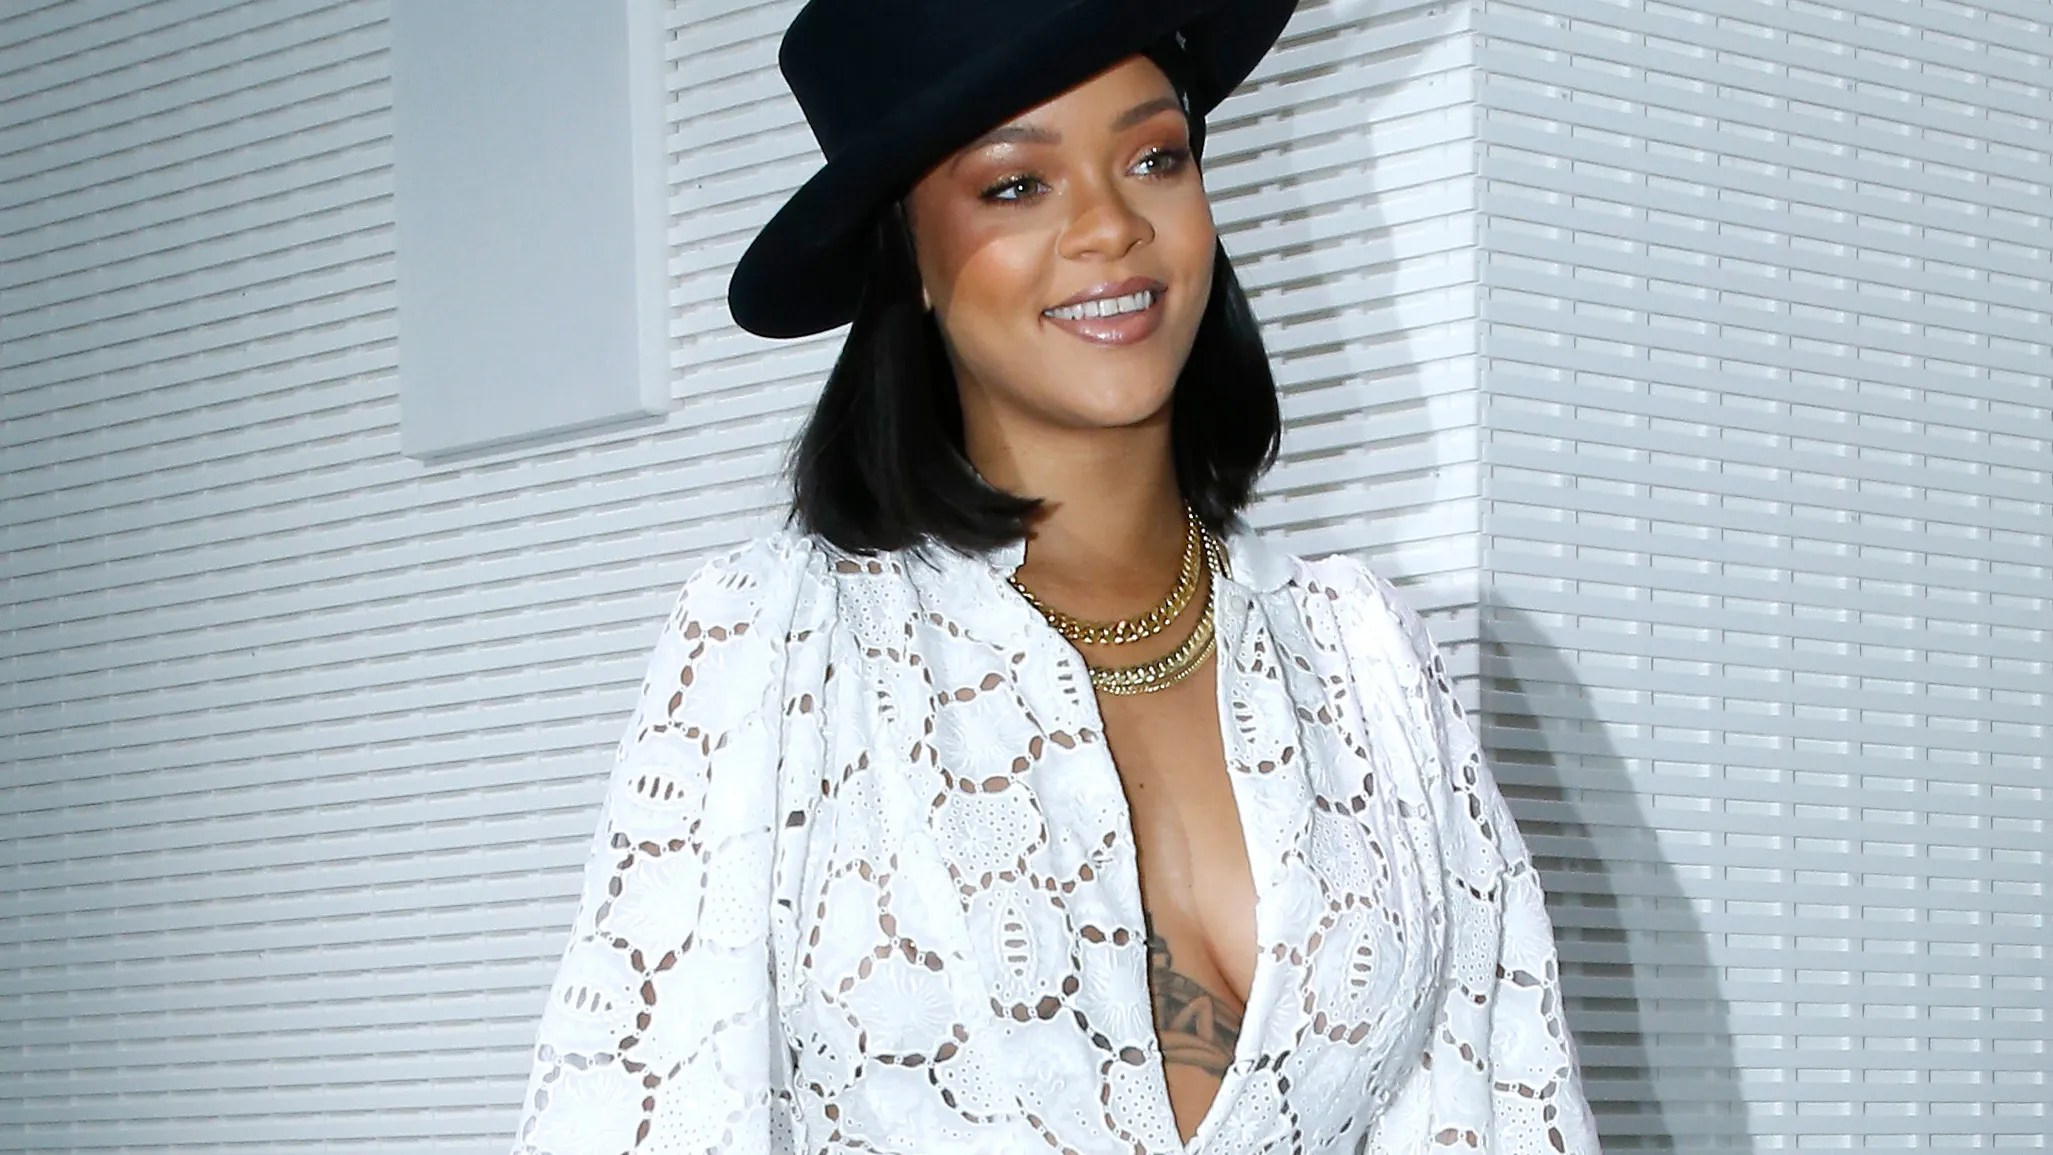 Rihanna Stuns At The Lvmh Prize Ceremony In Christian Dior